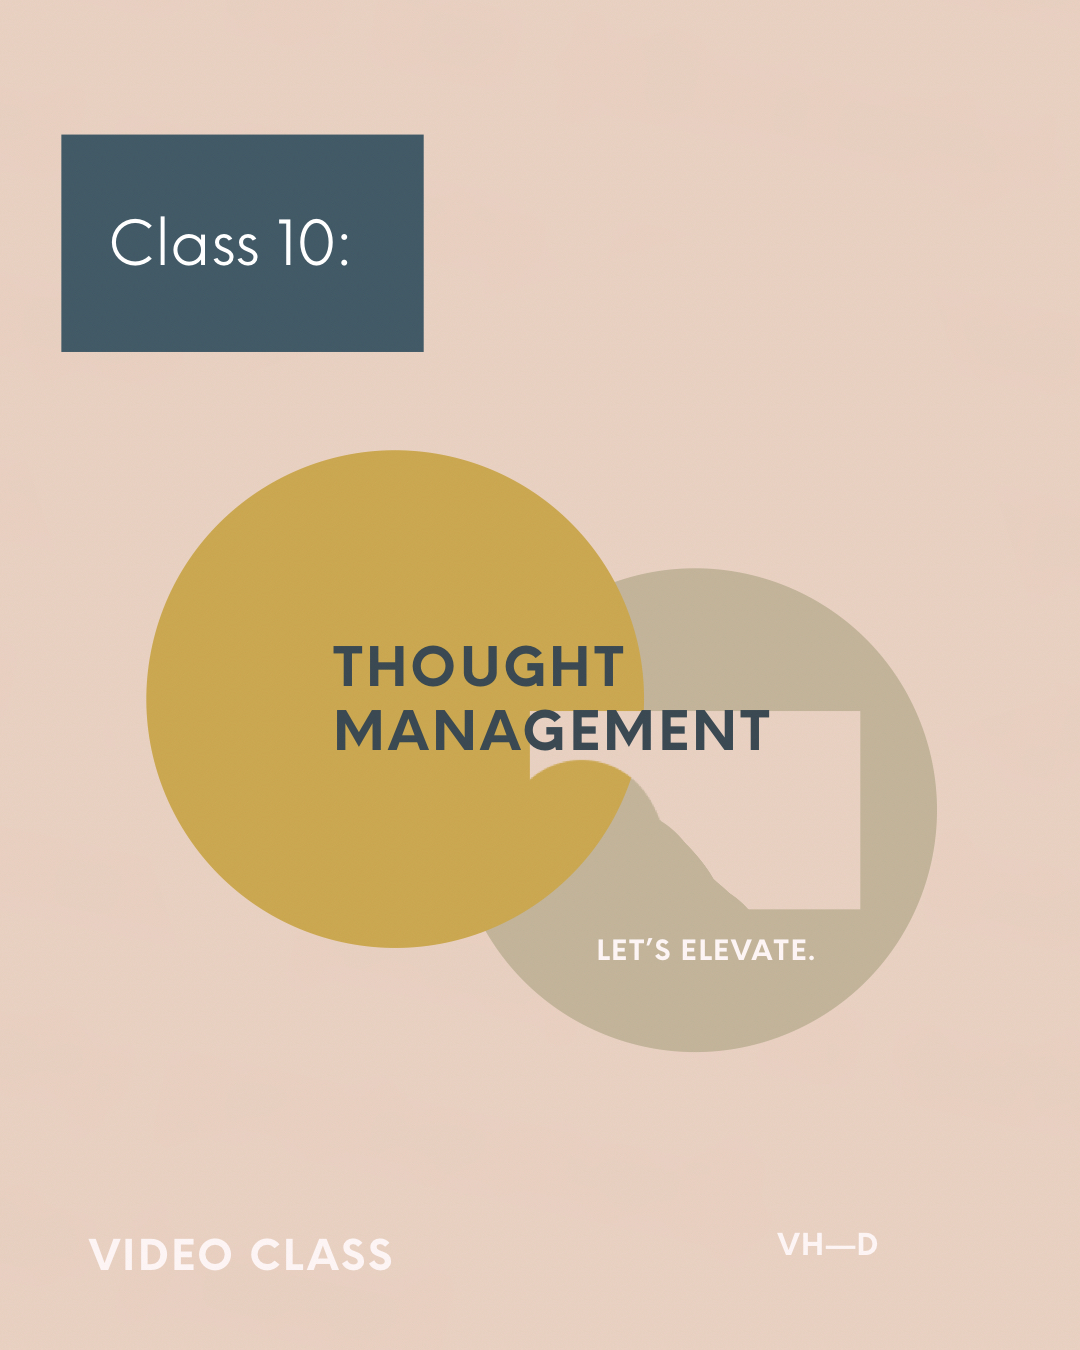 Class 10: Thought Management - Let's elevate and liberate!Is your mind free, balanced, and in harmony with your highest good?